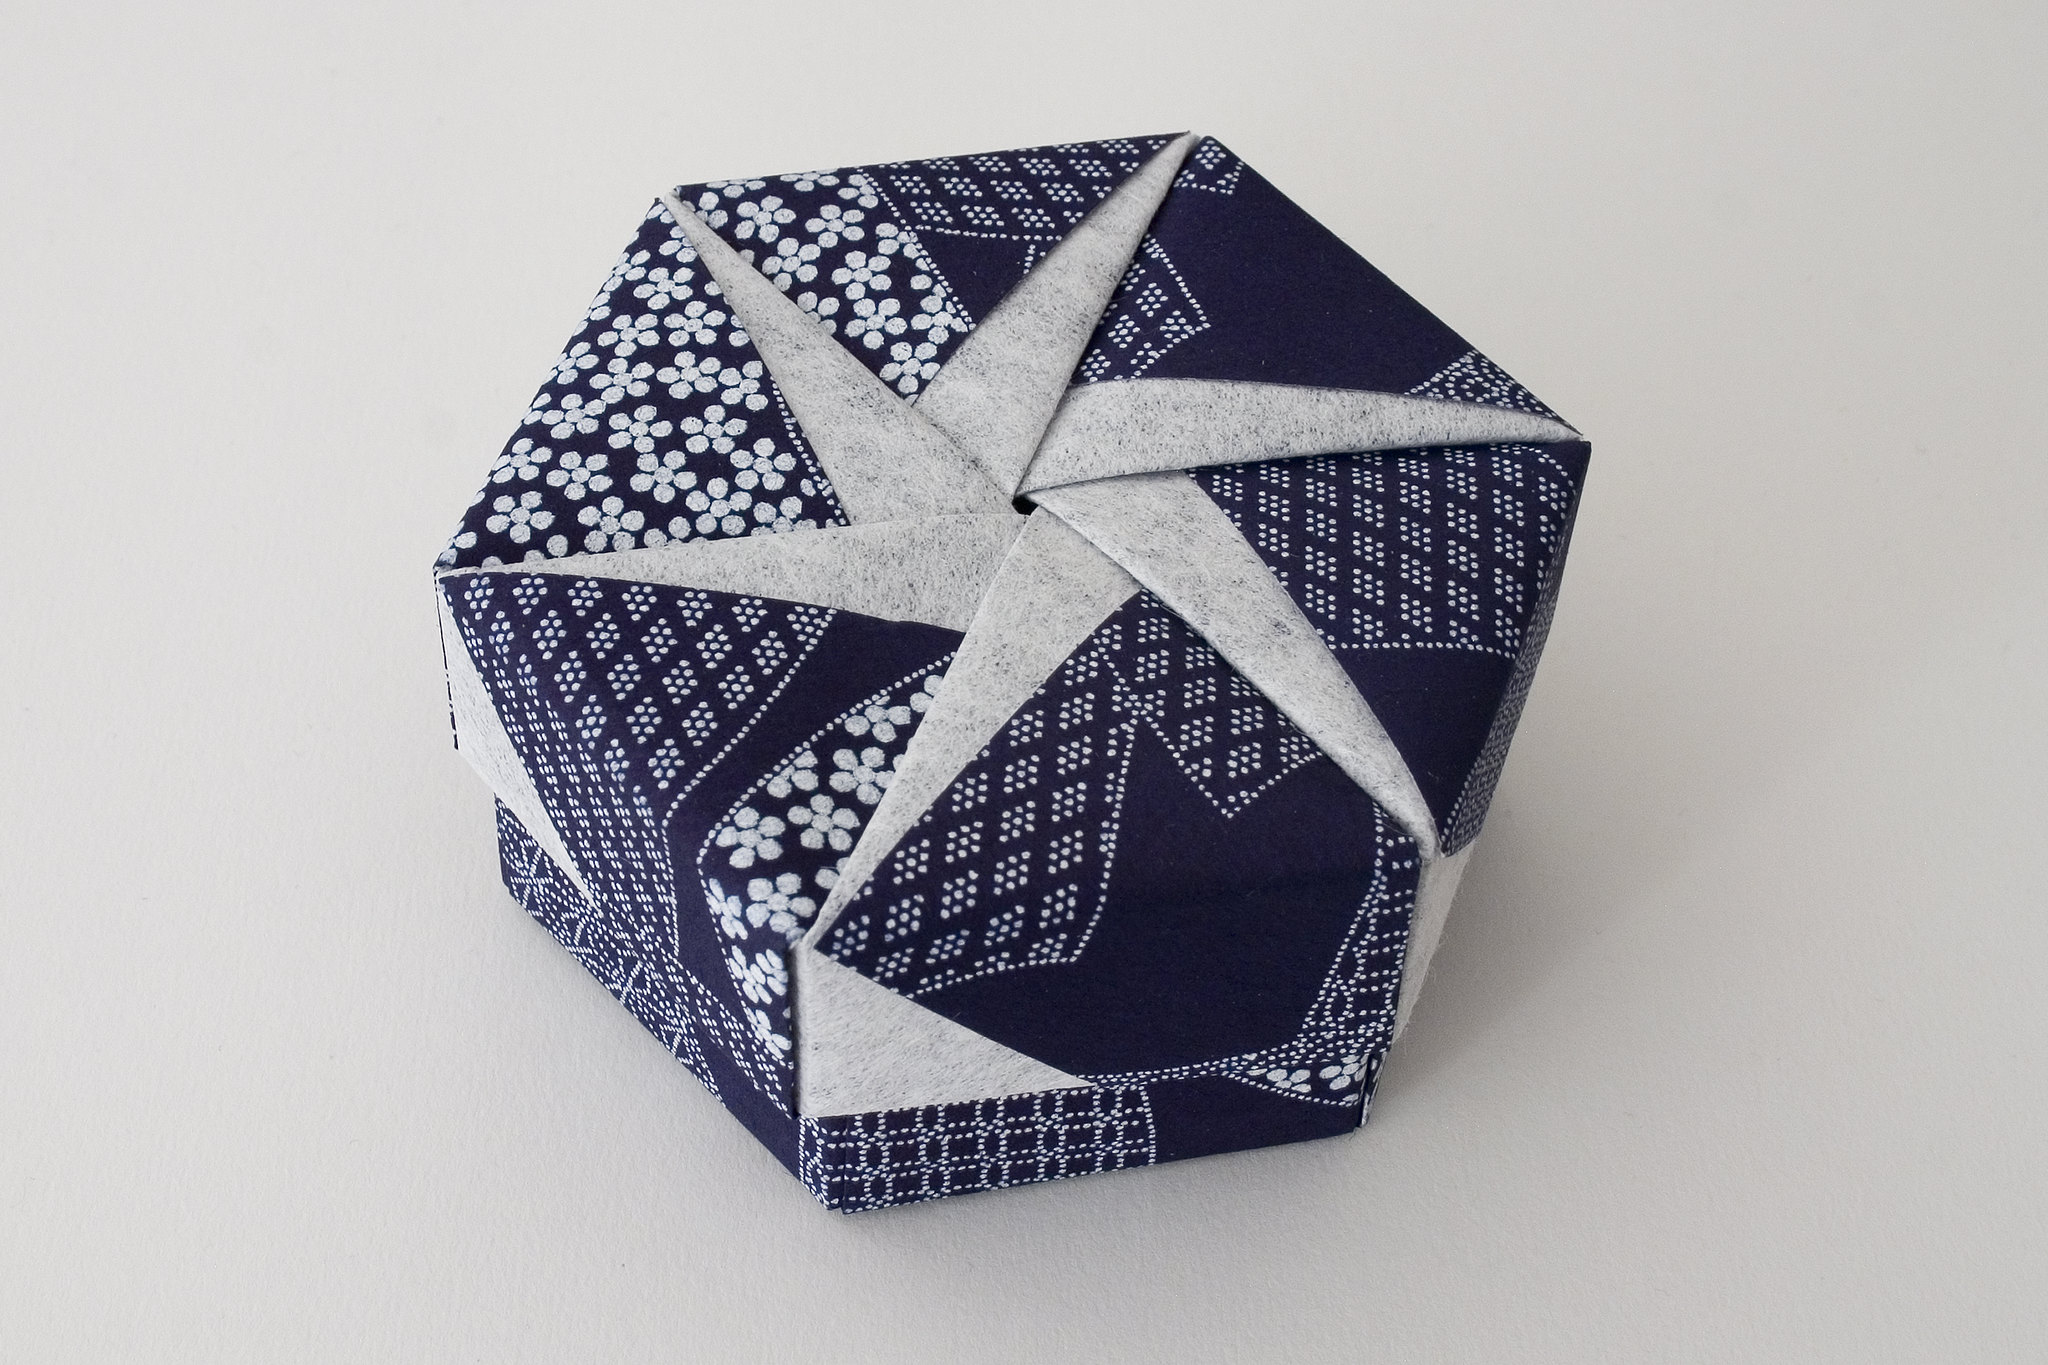 Hexagonal Origami Box with Lid #18 | Flickr - Photo Sharing! - photo#50